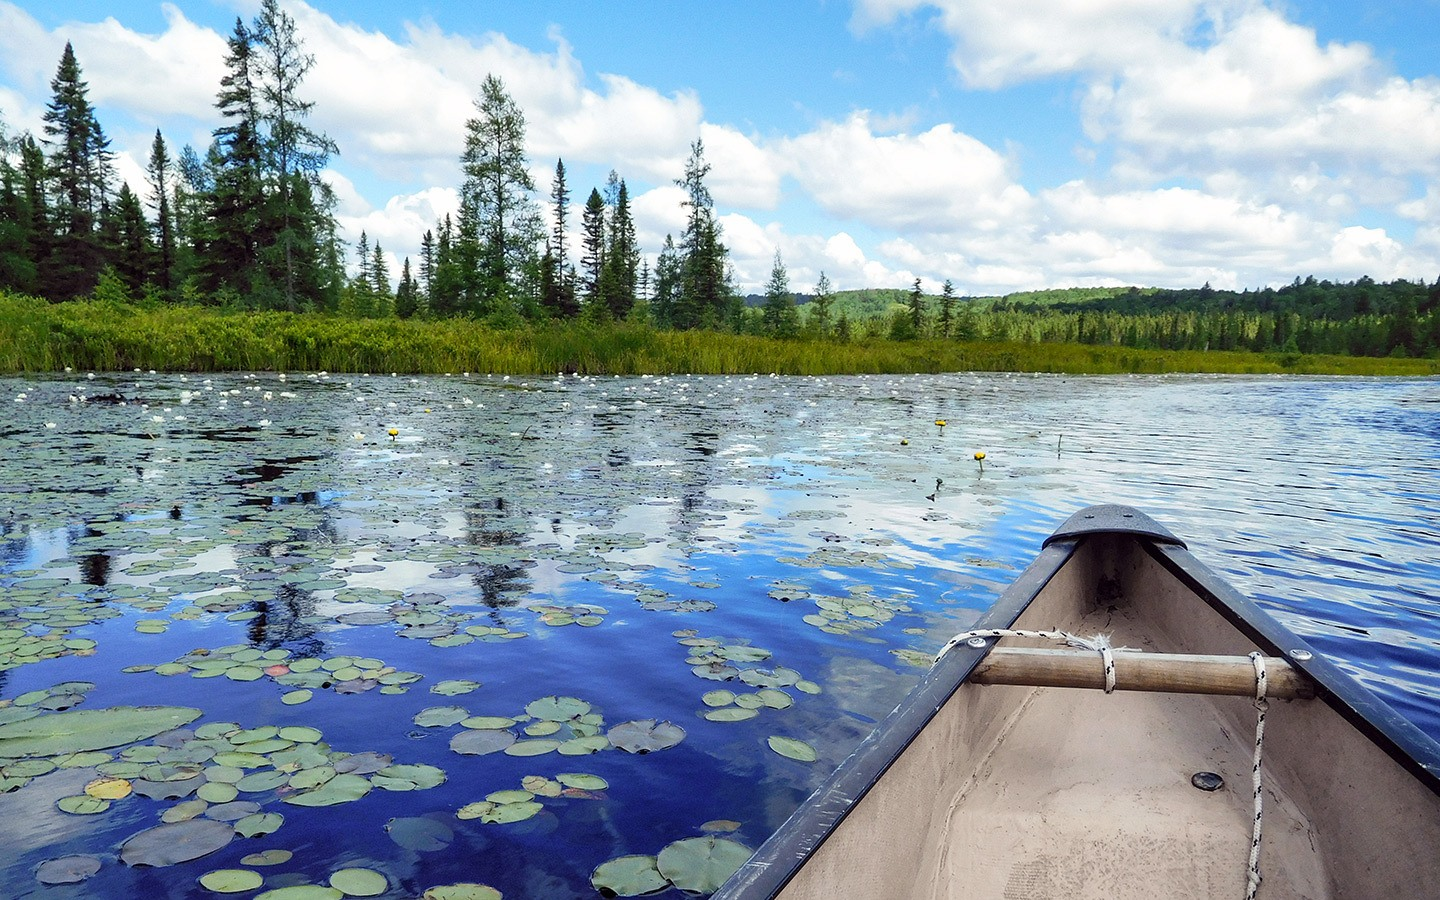 Canoeing though the lily pads in in Algonquin Provincial Park